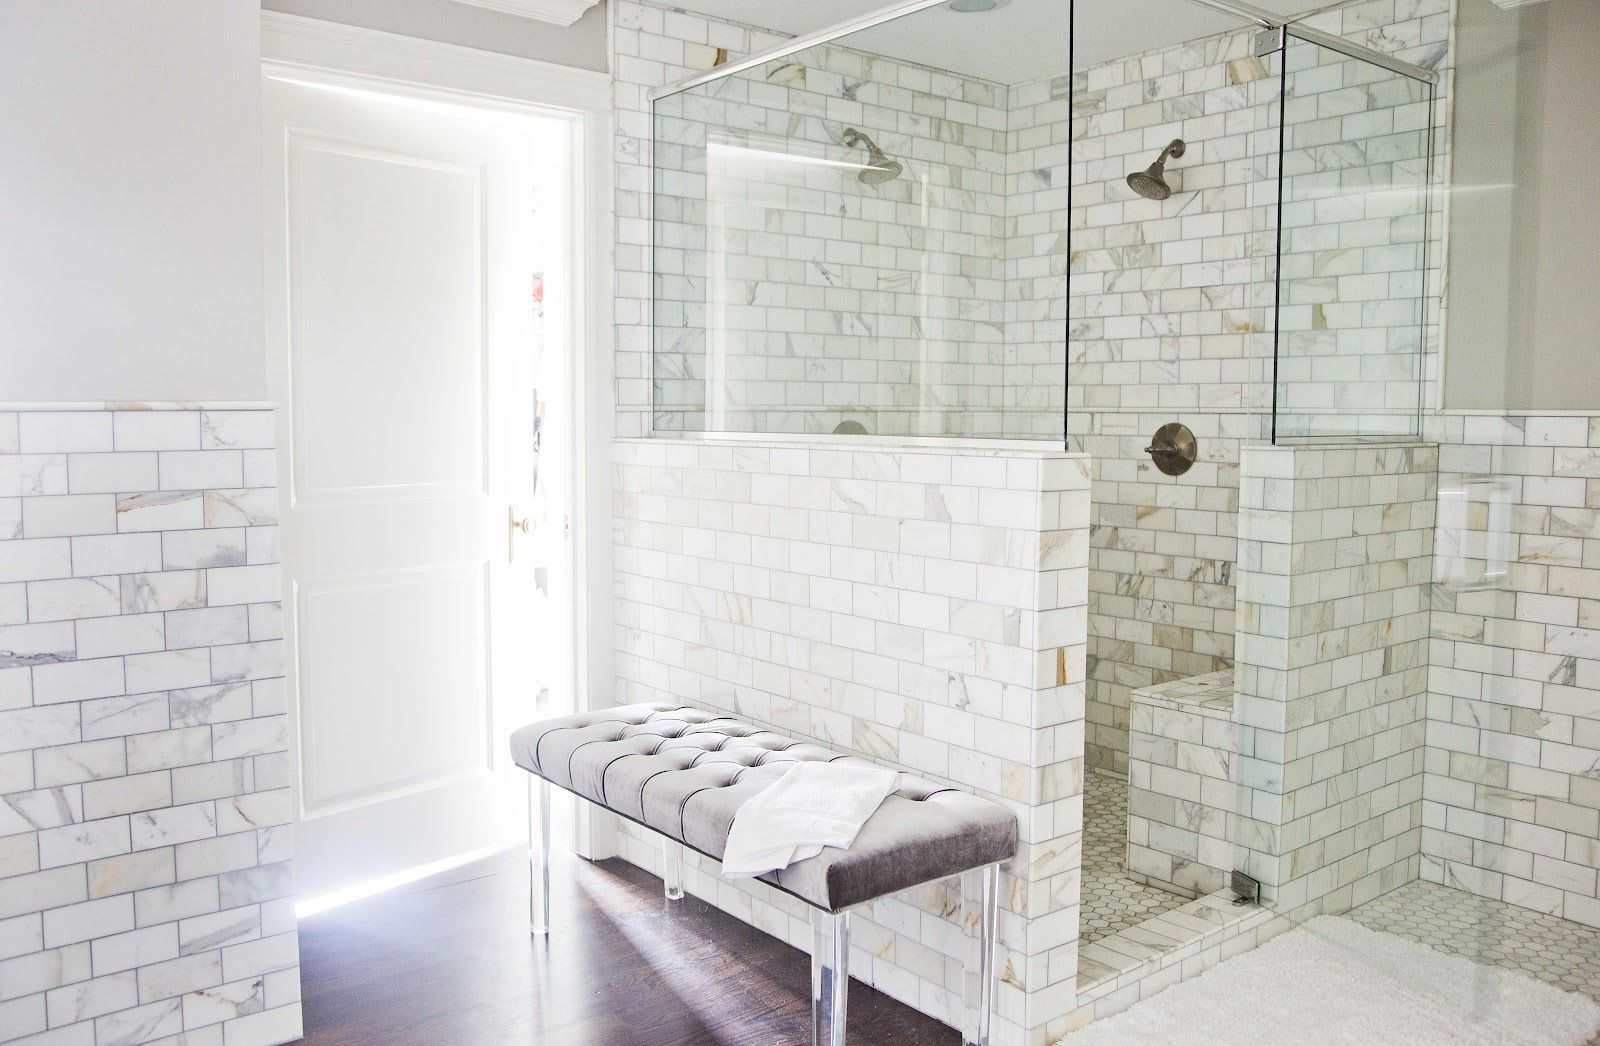 Dark wood floors calcutta gold marble tile benjamin moore revere source white gold design stunning master bathroom with gray paint color calcutta gold marble subway tile backsplash open shower with calcutta gold dailygadgetfo Images